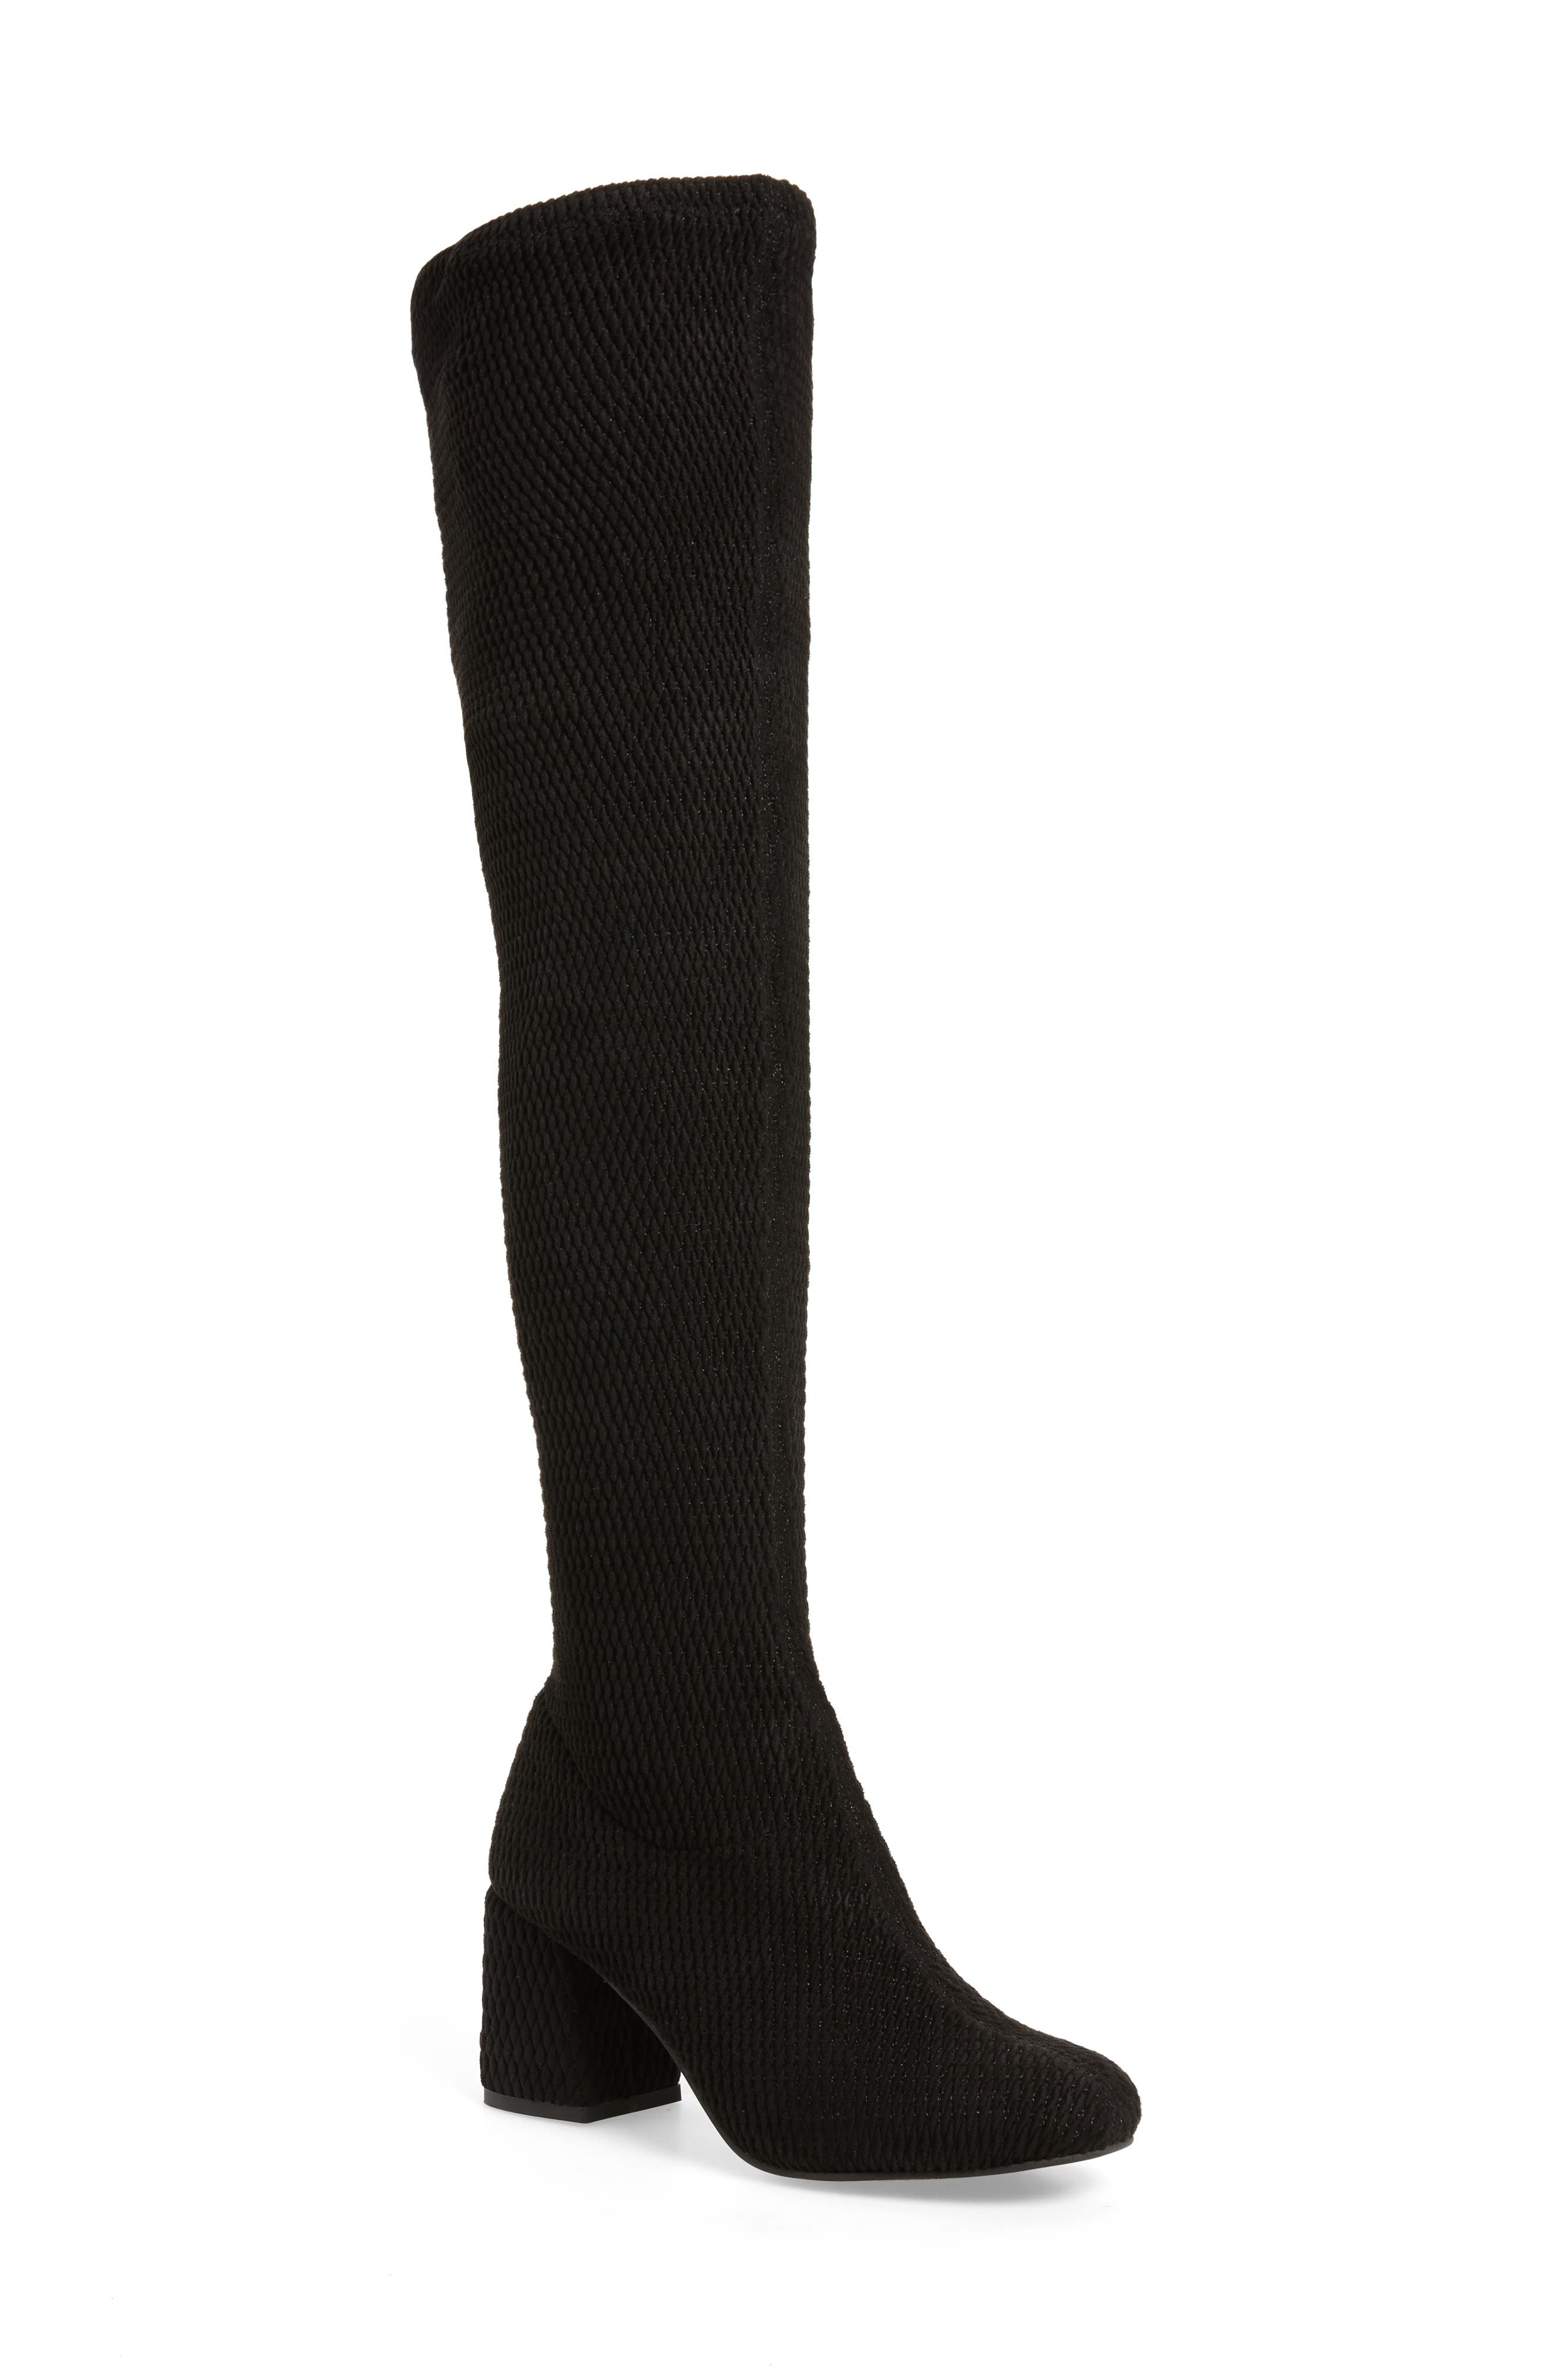 Main Image - Seychelles Act One Stretch Over the Knee Boot (Women)